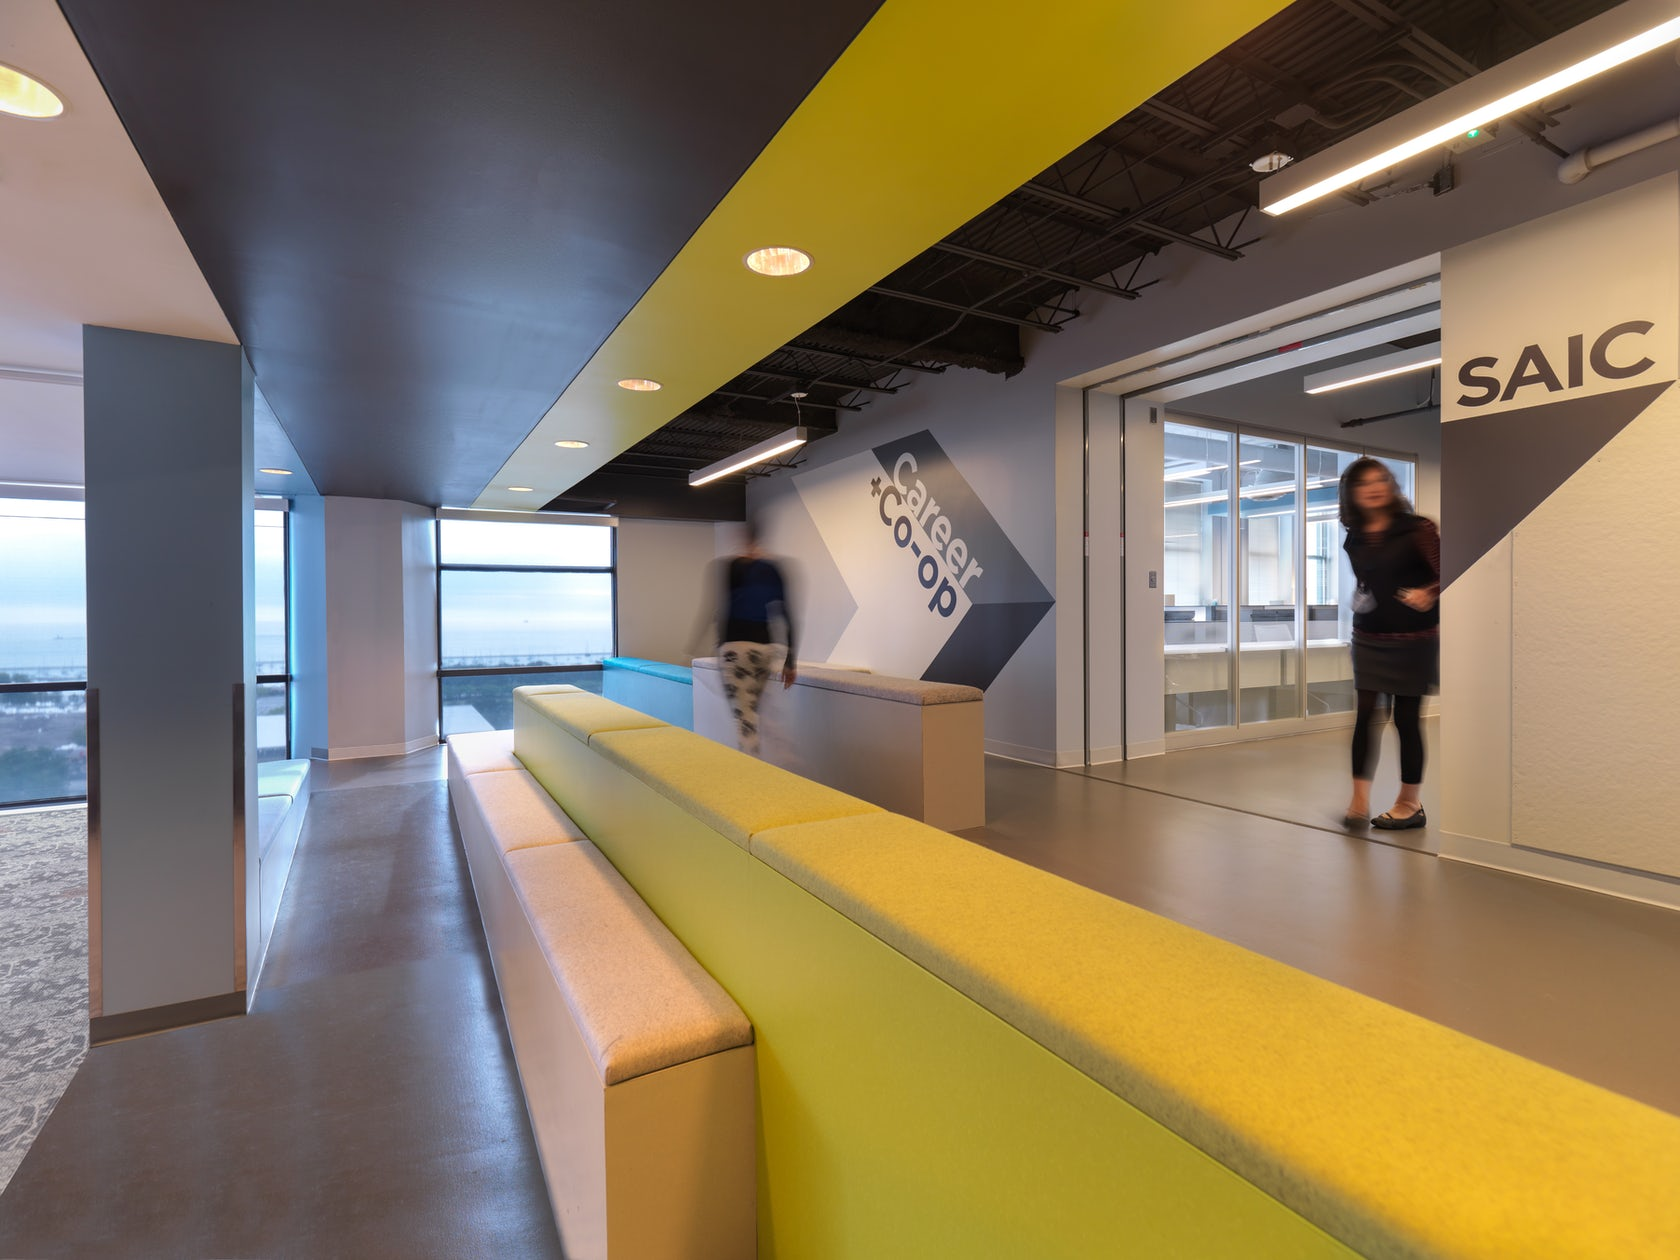 institute chicago saic center career op architizer projects american jgma website